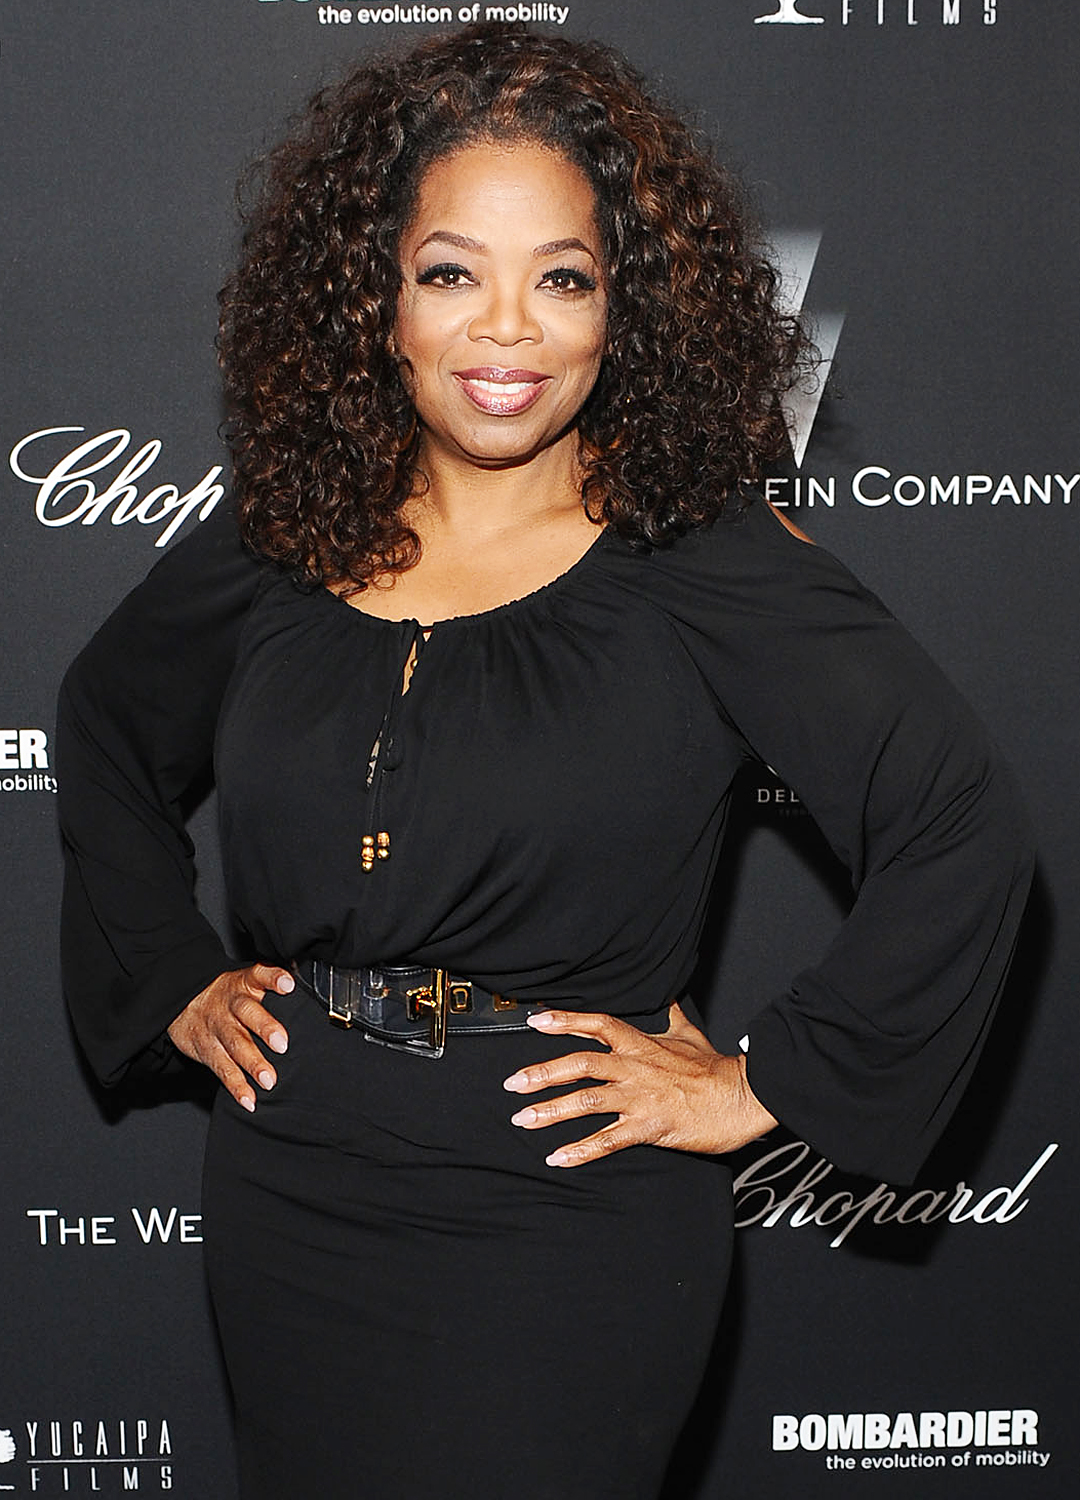 The media mogul founded Harpo Productions, Inc. in 1986, and went on to create her own television network, OWN. According to Forbes , Winfrey's net worth is $3 billion, making her the first African-American woman billionaire.